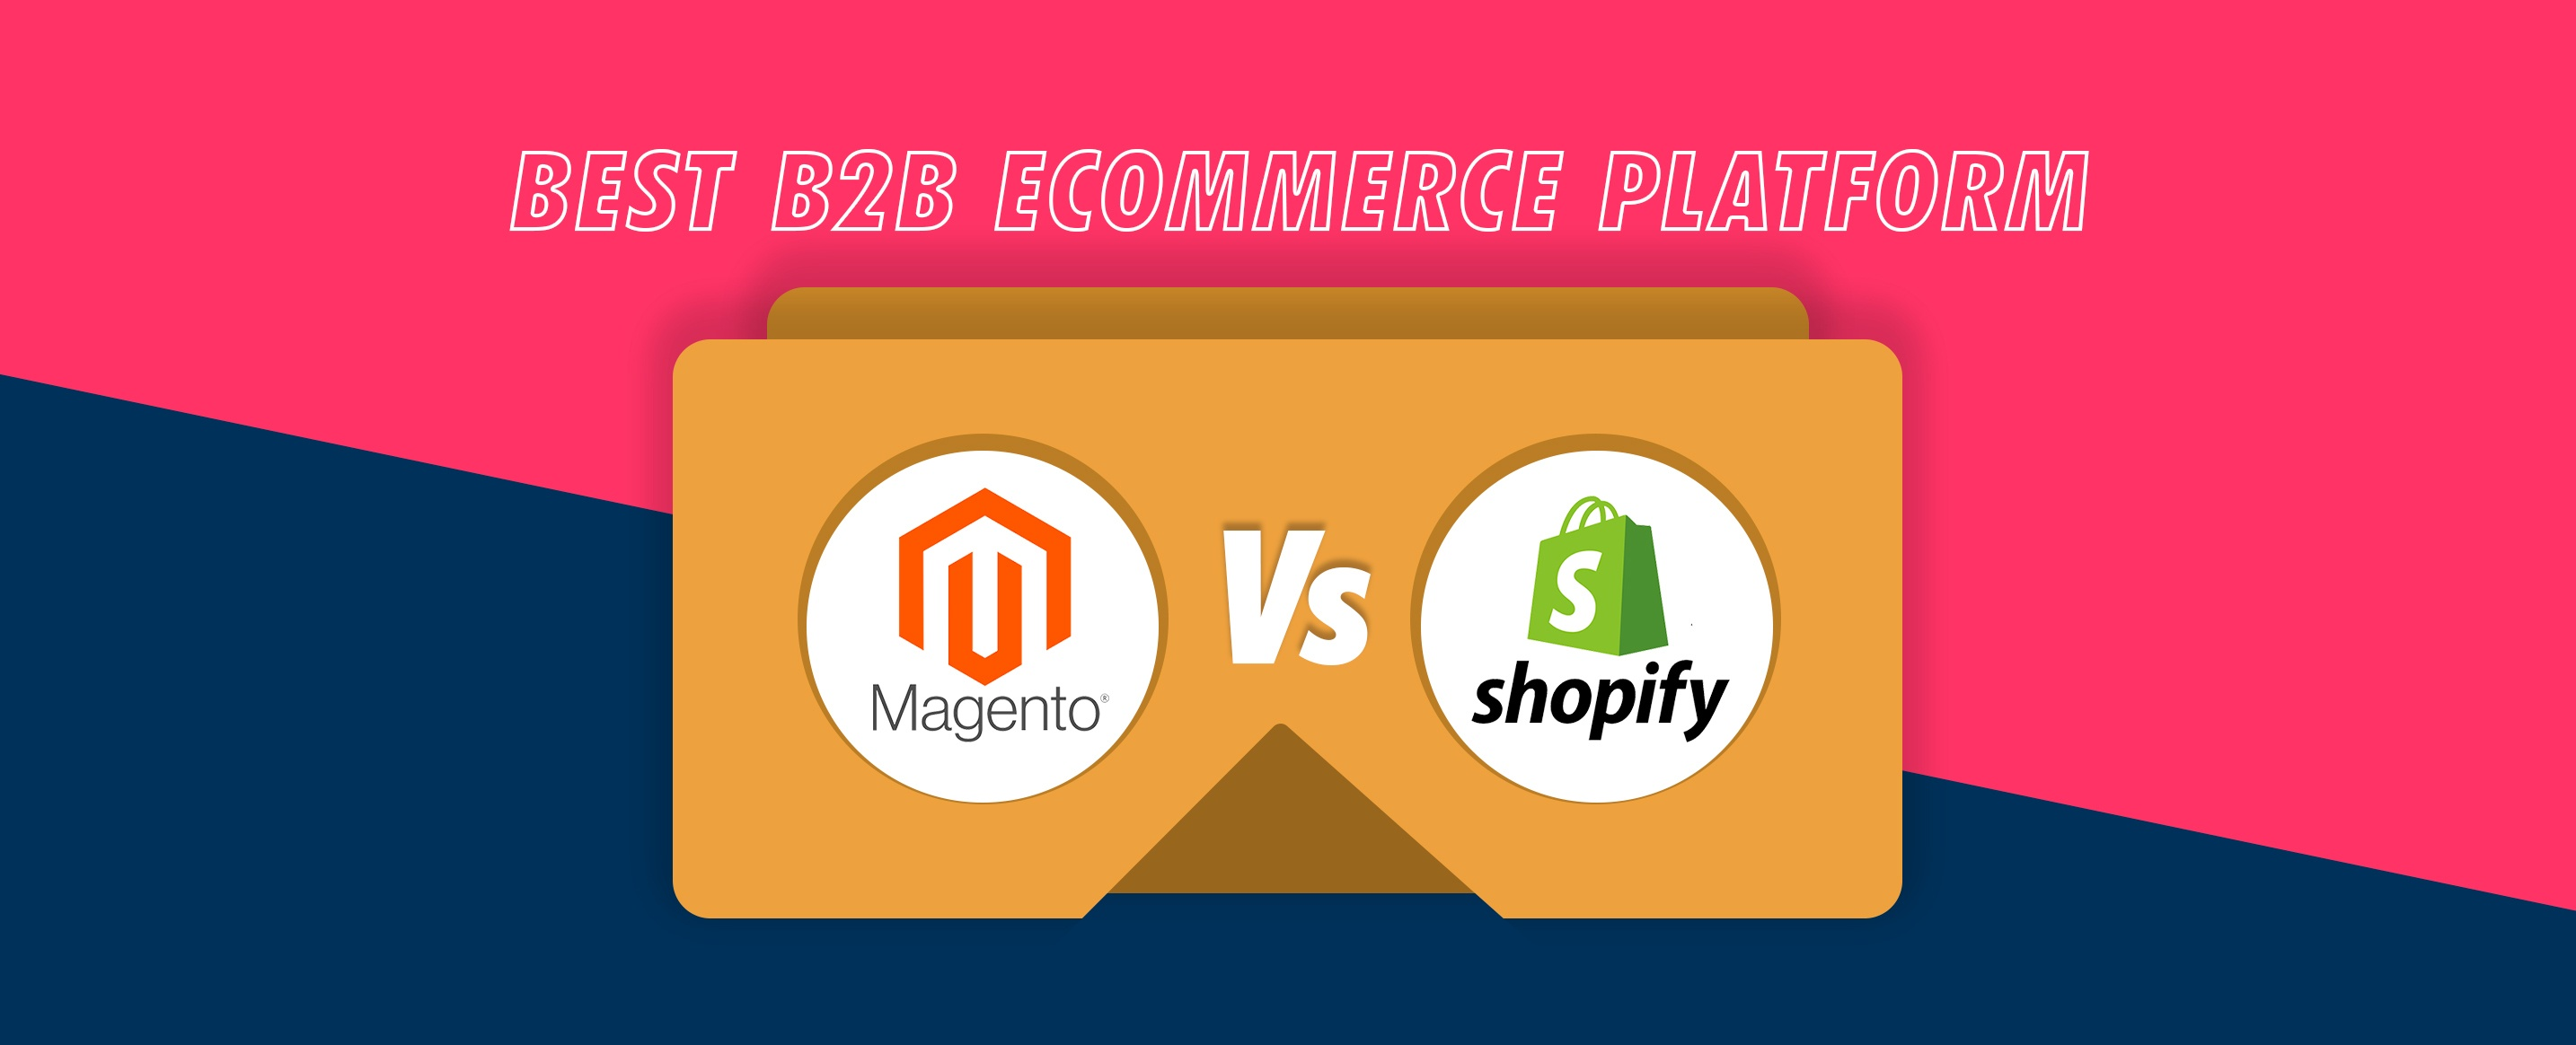 Magento-Vs-Shopify-Best-B2B-Ecommerce-Platform